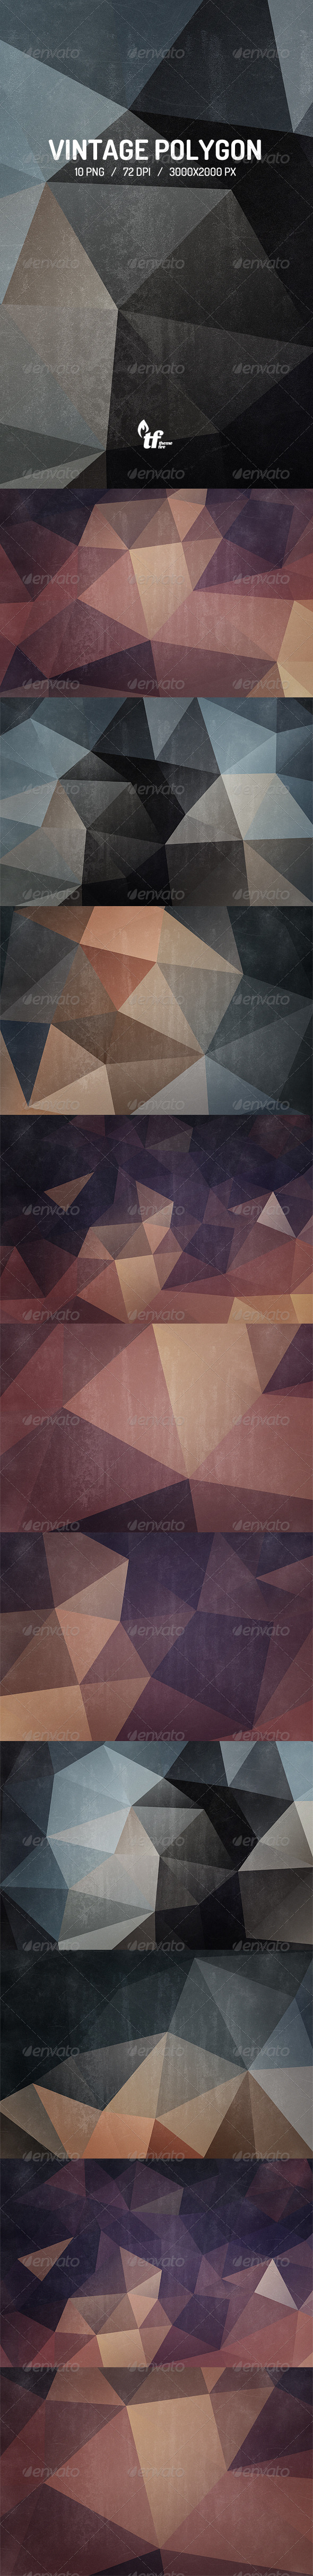 GraphicRiver Vintage Polygon Backgrounds 7295509